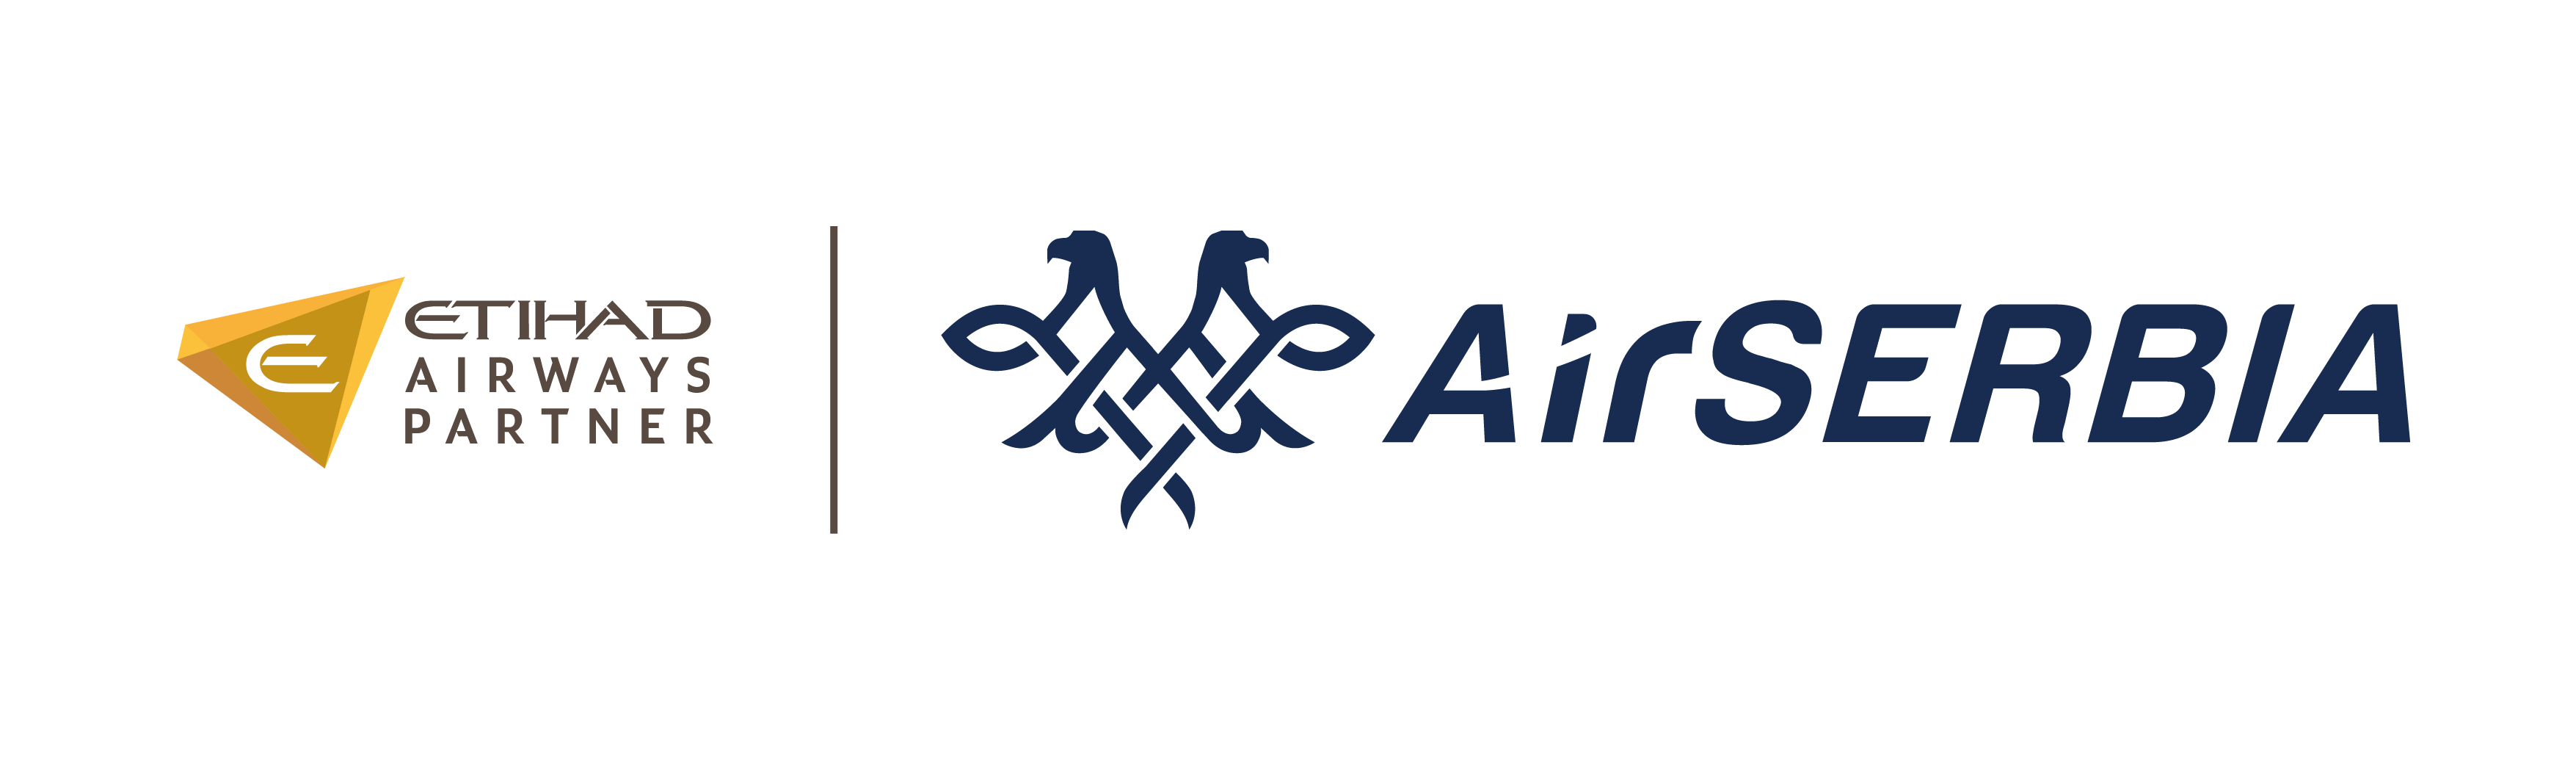 air_serbia_eap_logos_horizontal_eap_left-02